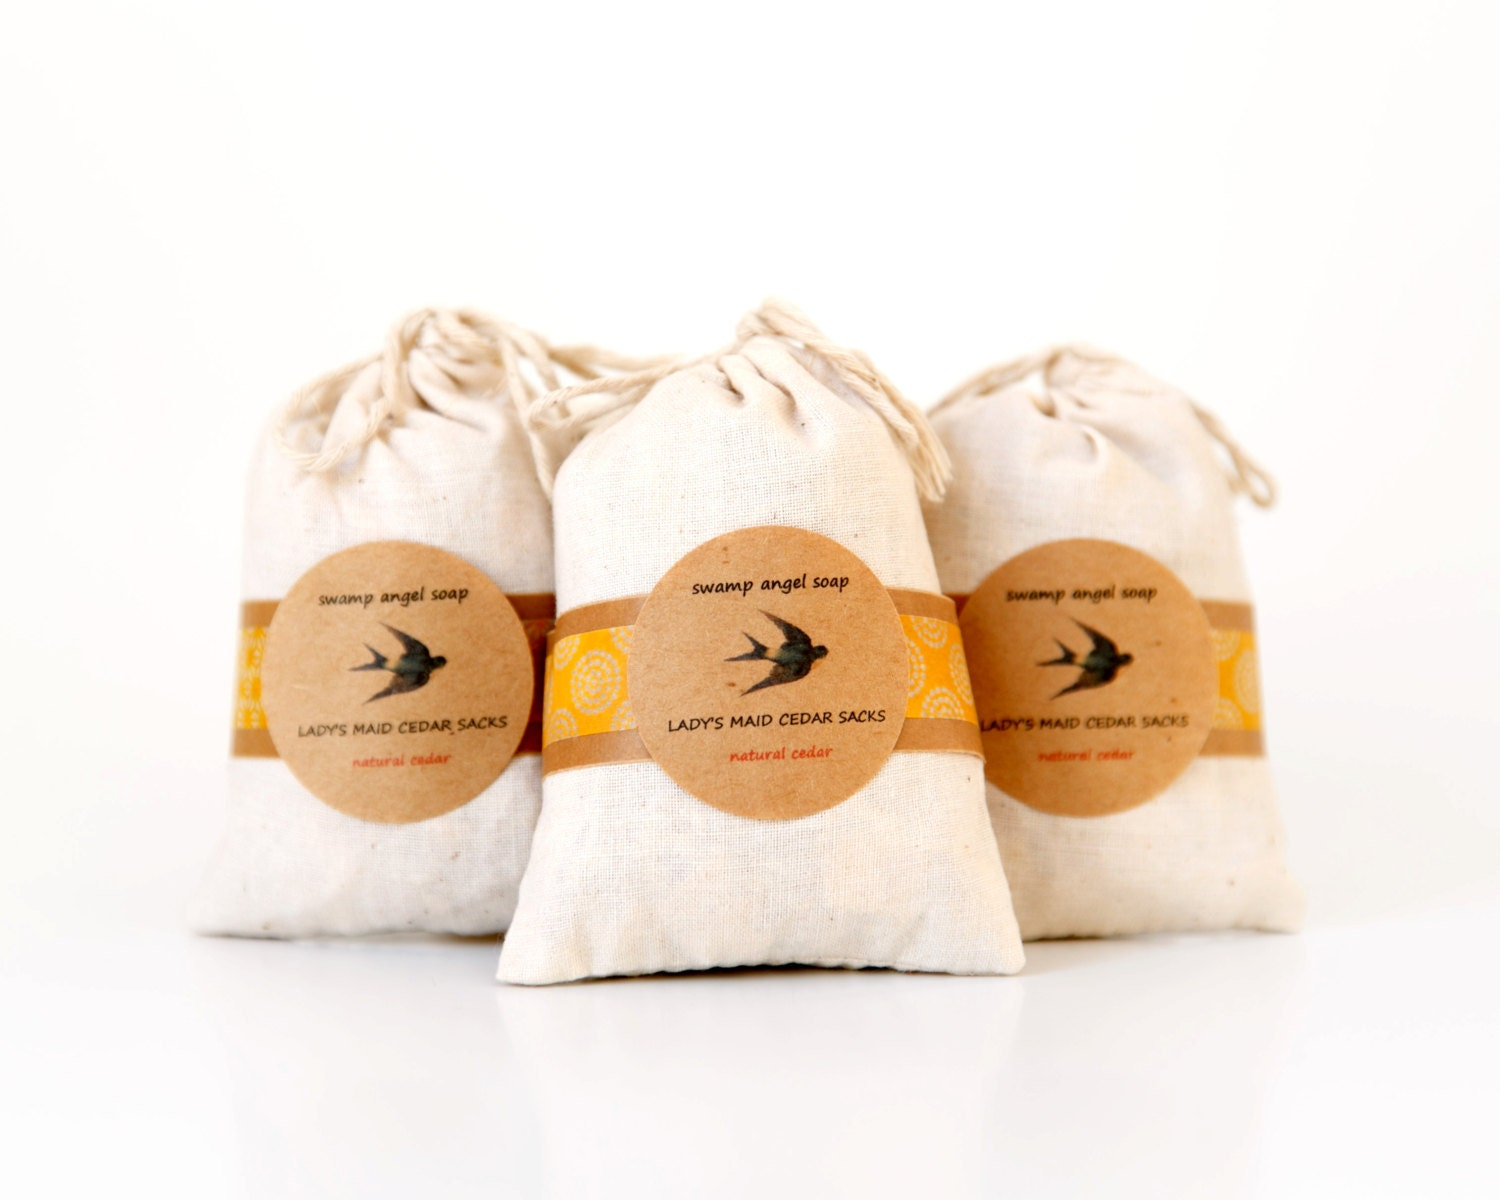 Lady's Maid Cedar Sacks Three-Pack // Natural Clothing Care // Cedar Sachet // Cedar Bags